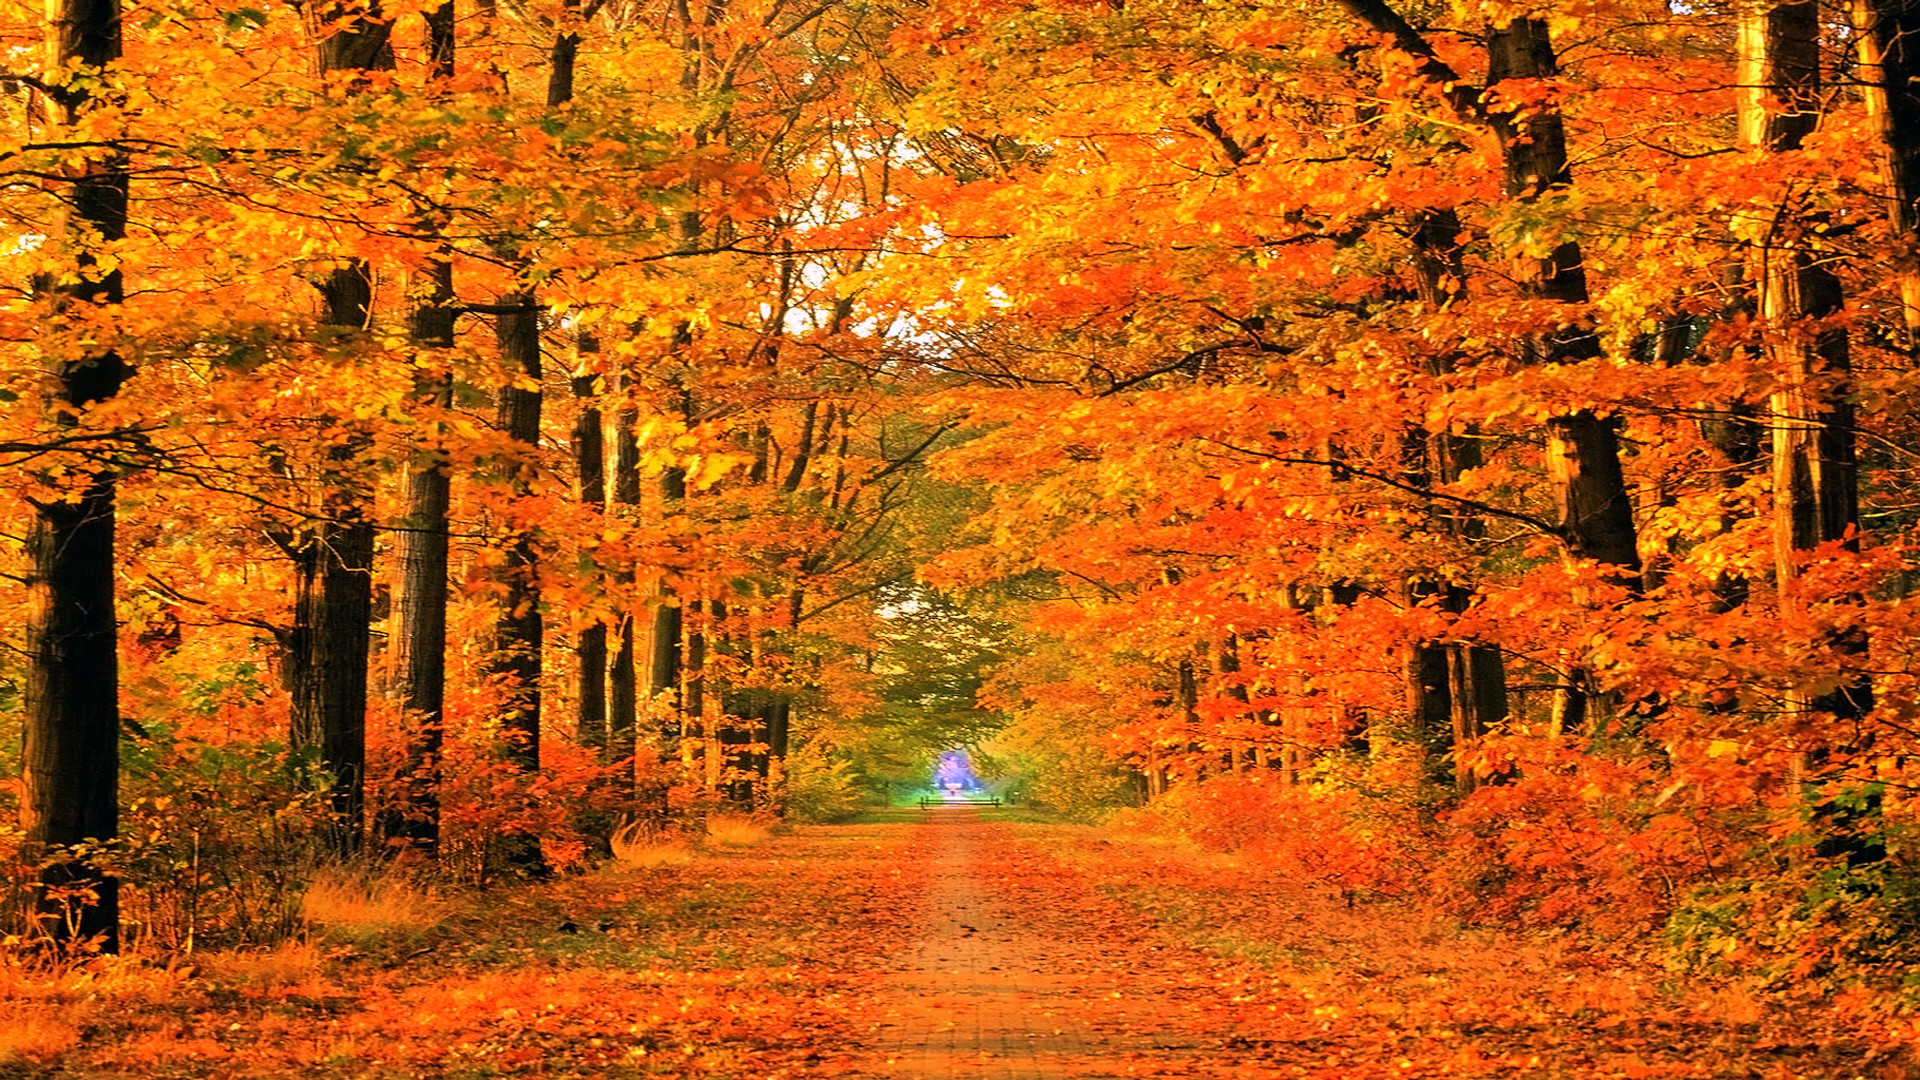 Download Fall Computer Backgrounds.